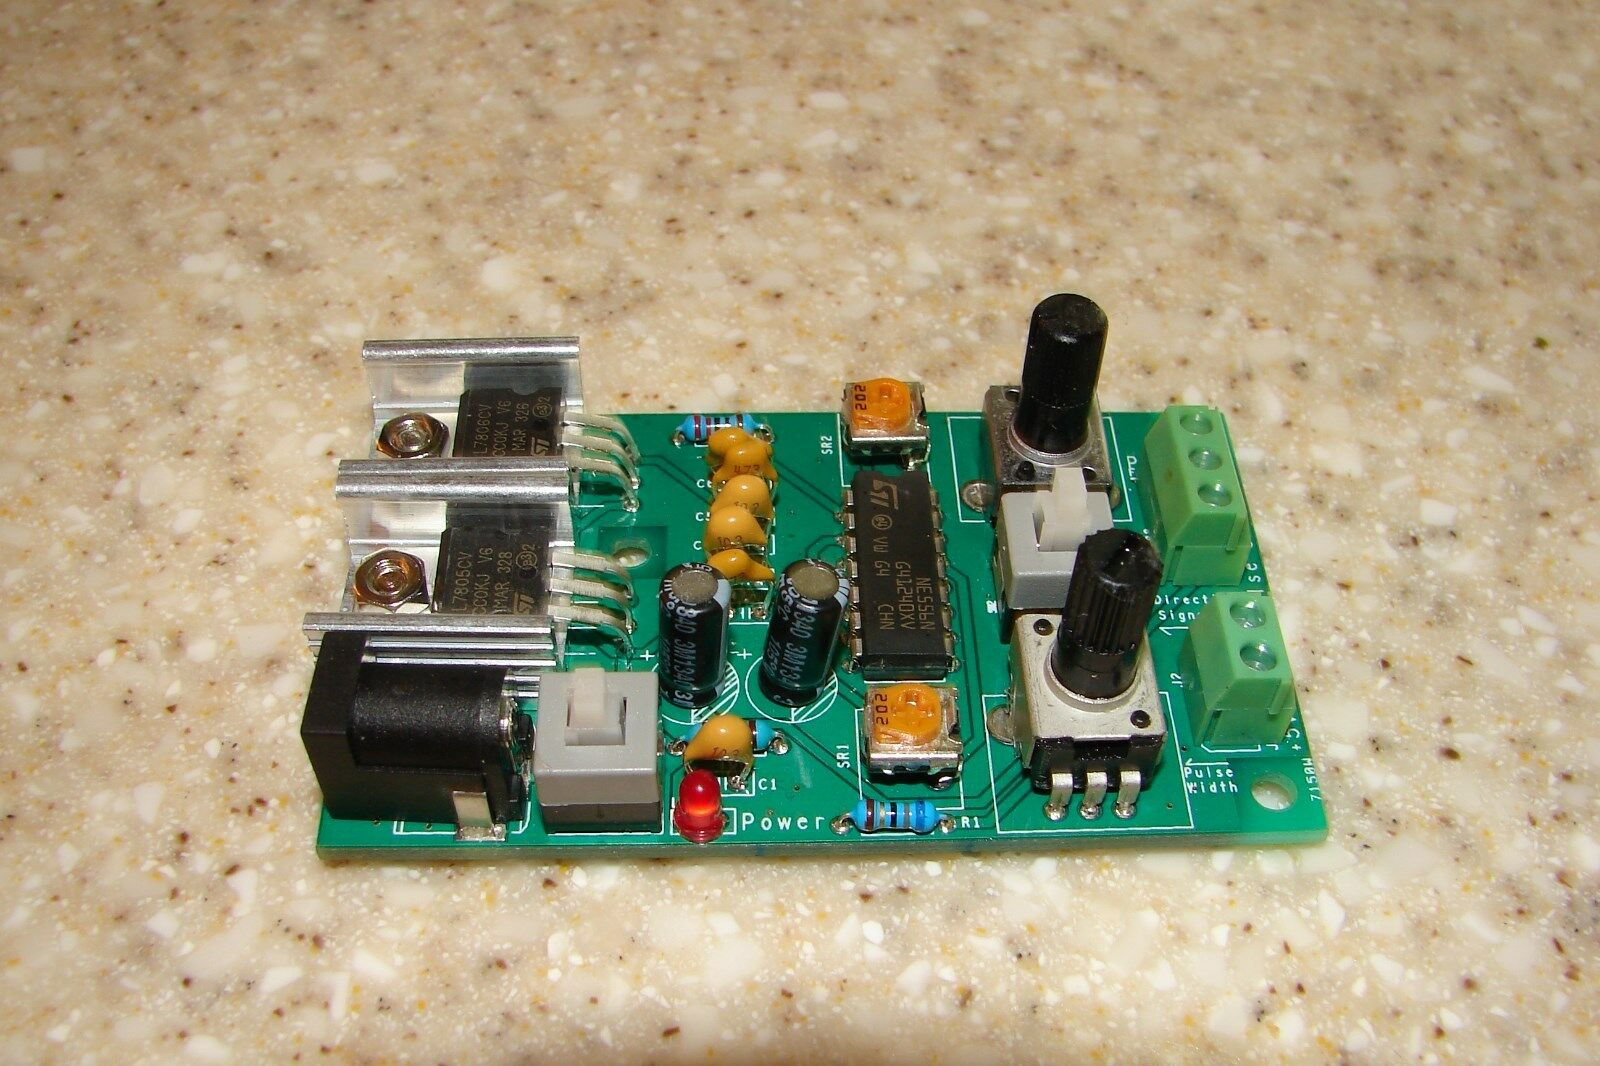 Cnc Stepper Motor Step Dir Pulse Generator Ebay 12v Geared 4 Phase 5 Wires For Arduino Experiment Norton Secured Powered By Verisign